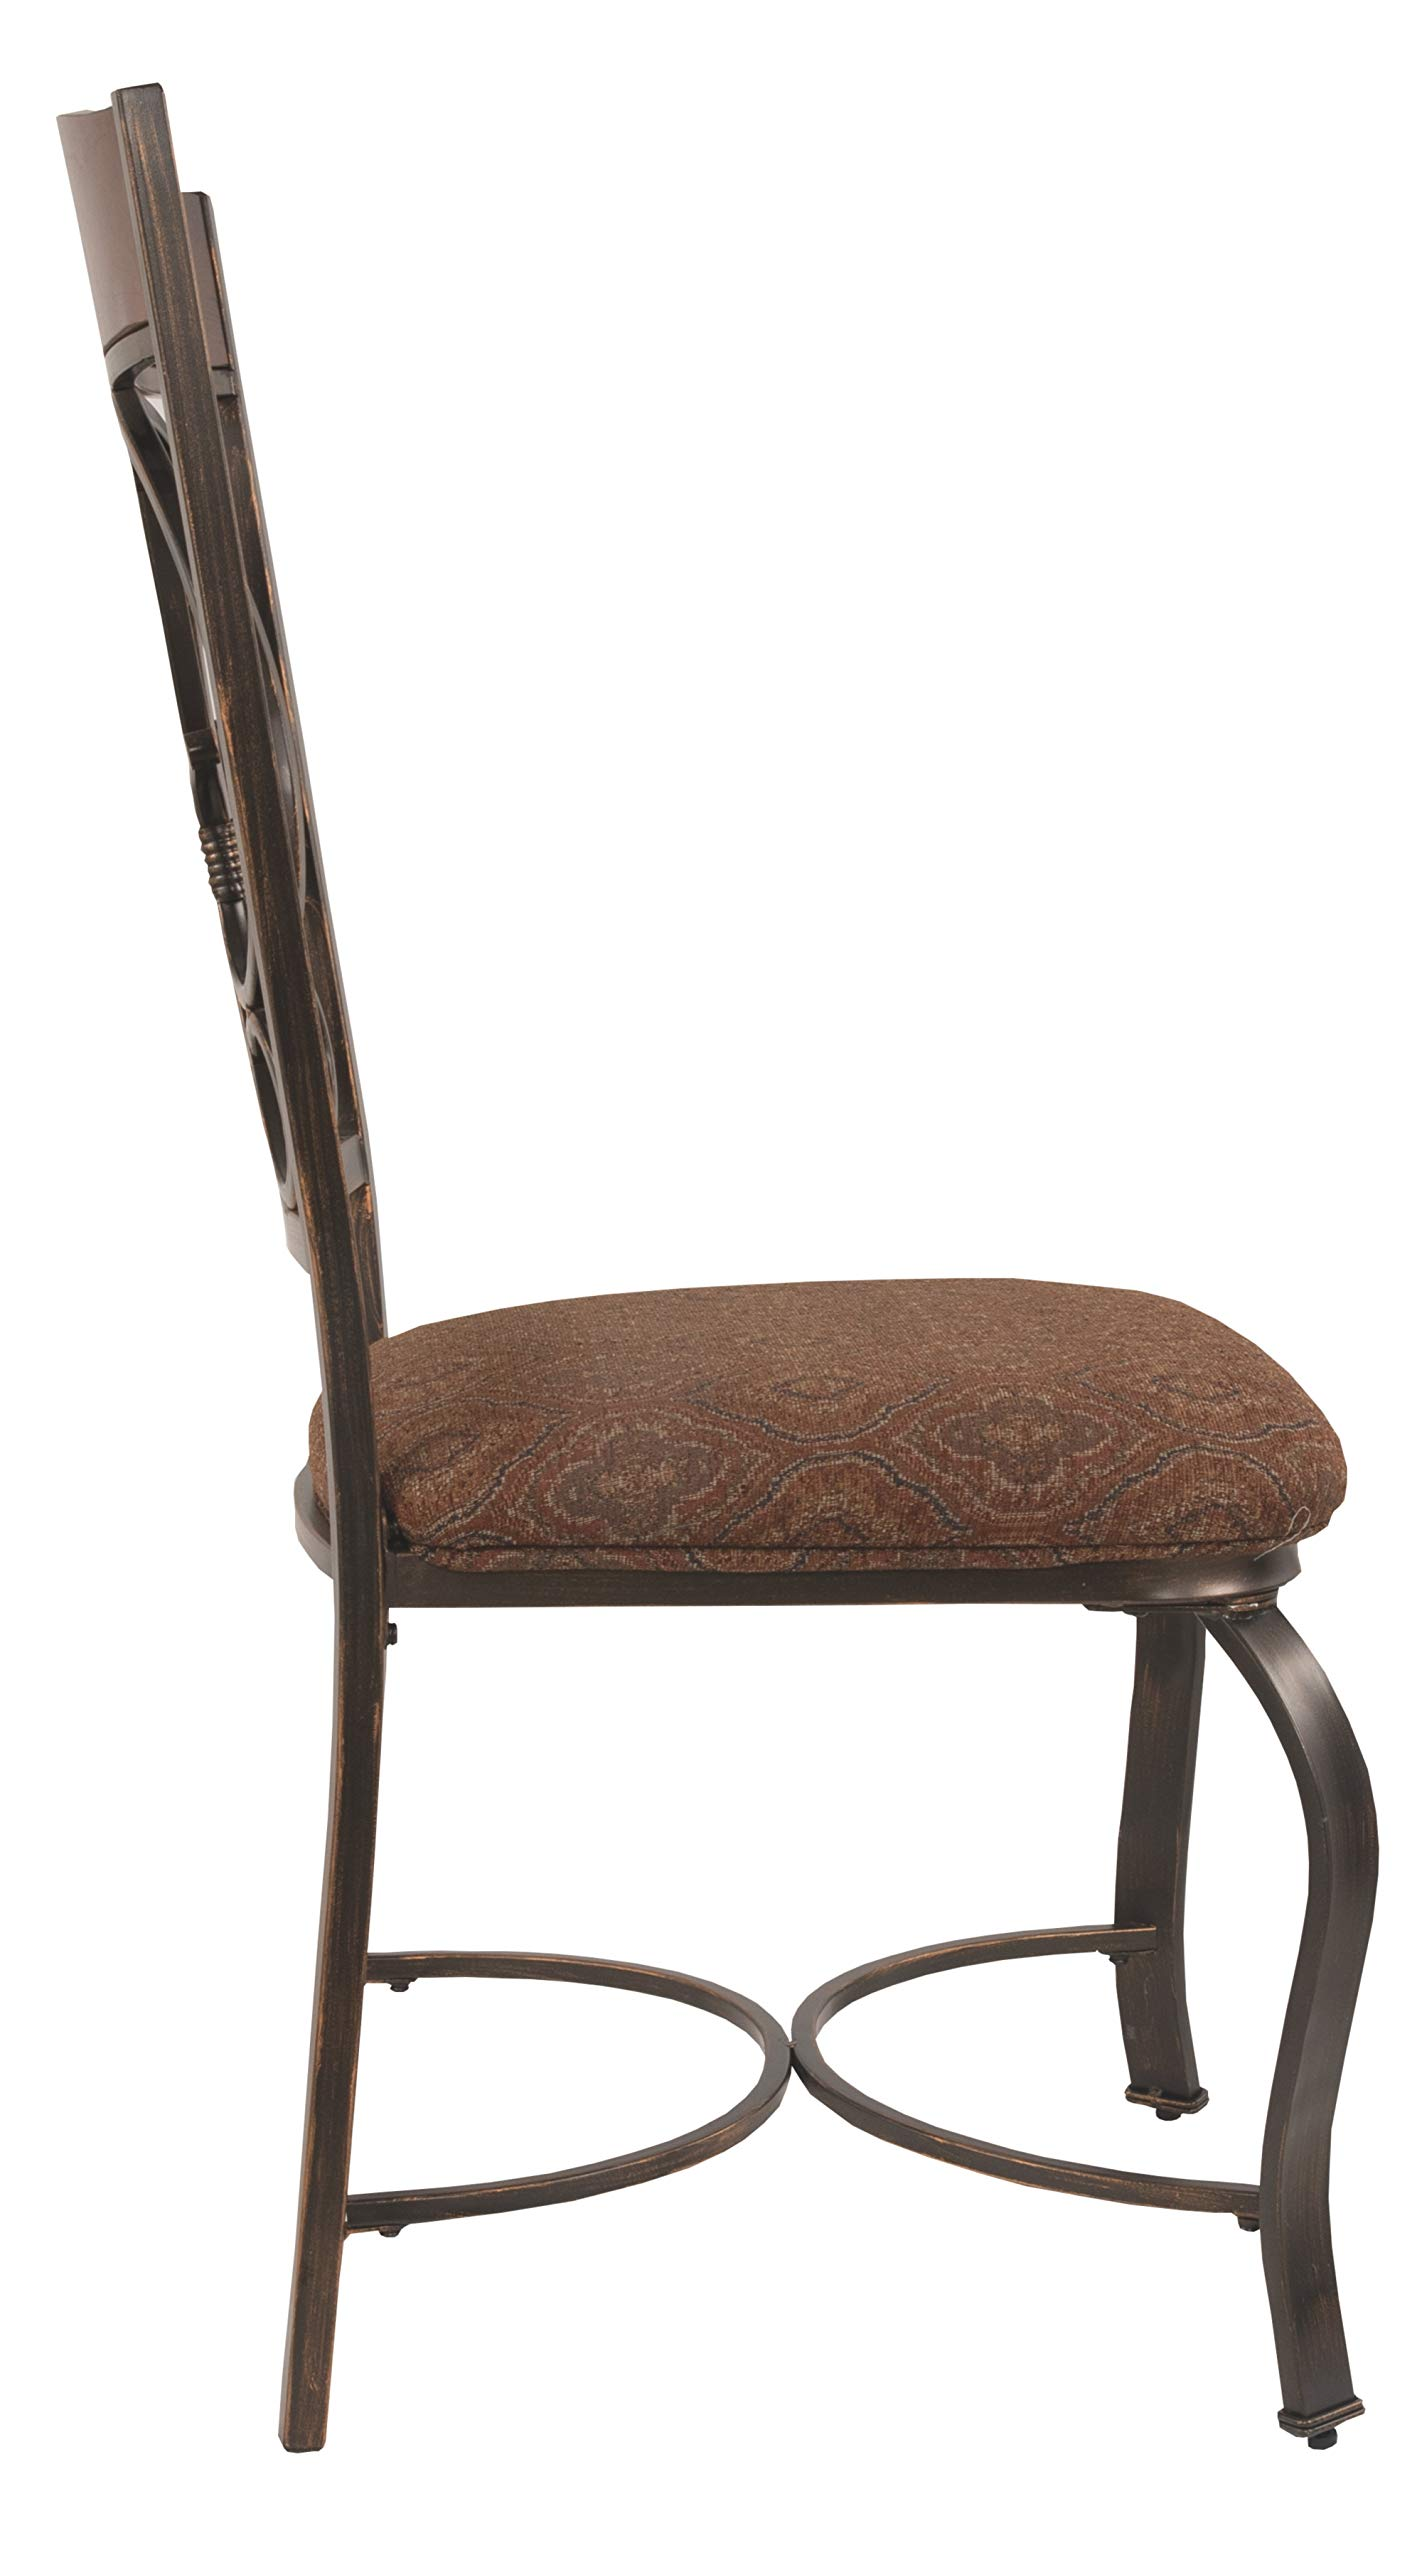 Ashley Furniture Signature Design - Glambrey Dining Room Chair Set - Scrolled Metal Accents - Set of 4 - Brown by Signature Design by Ashley (Image #4)